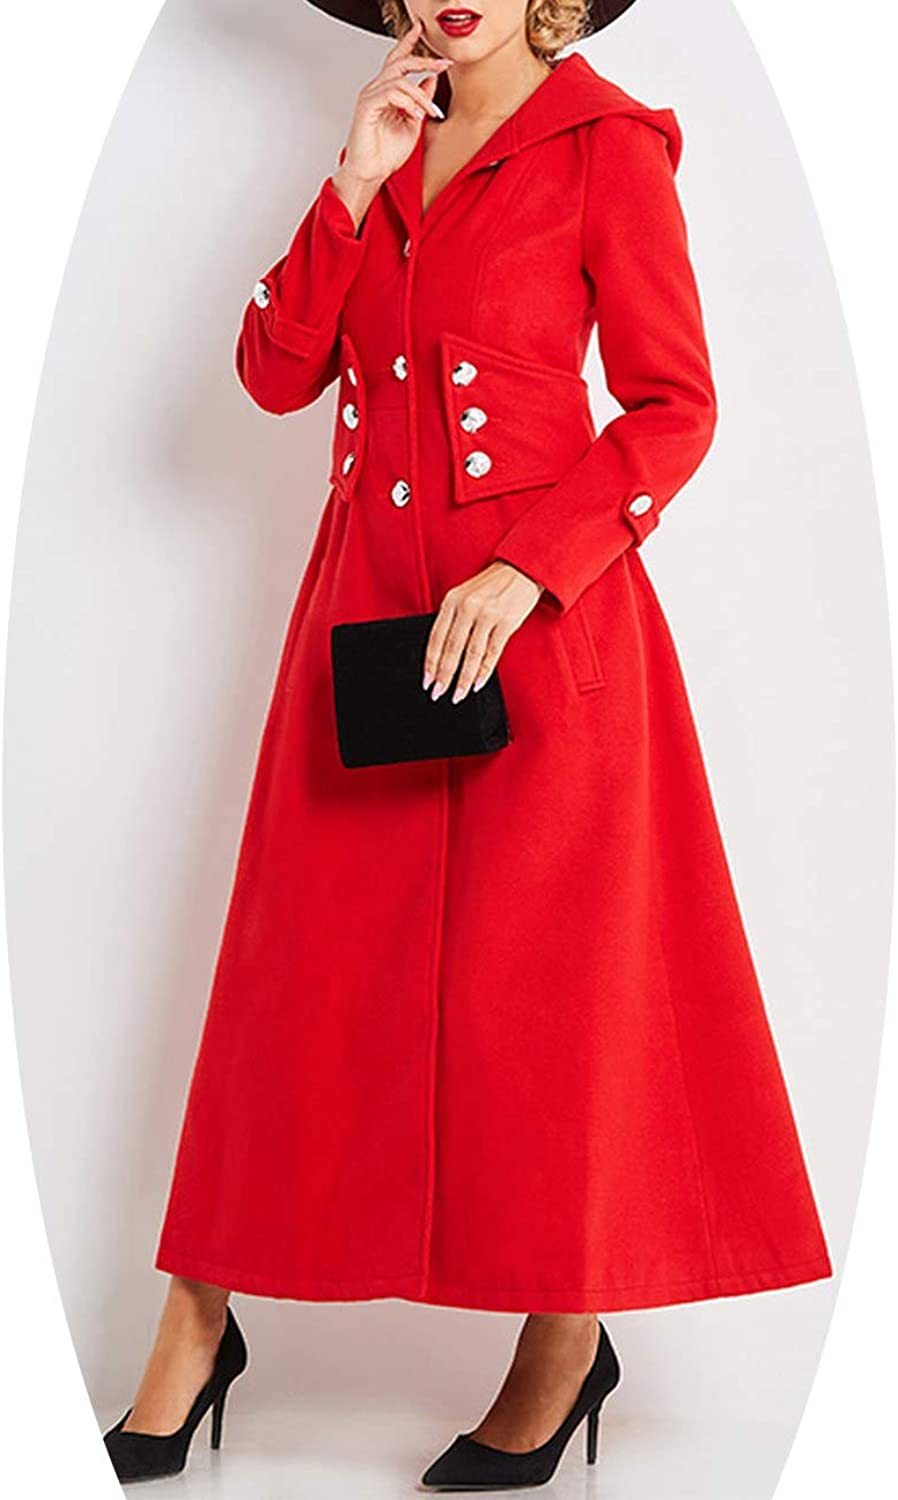 EnjoySexy Women Winter Coats Long Sleeve Single Breasted Slim red Sashes Buttons mid Length Jacket